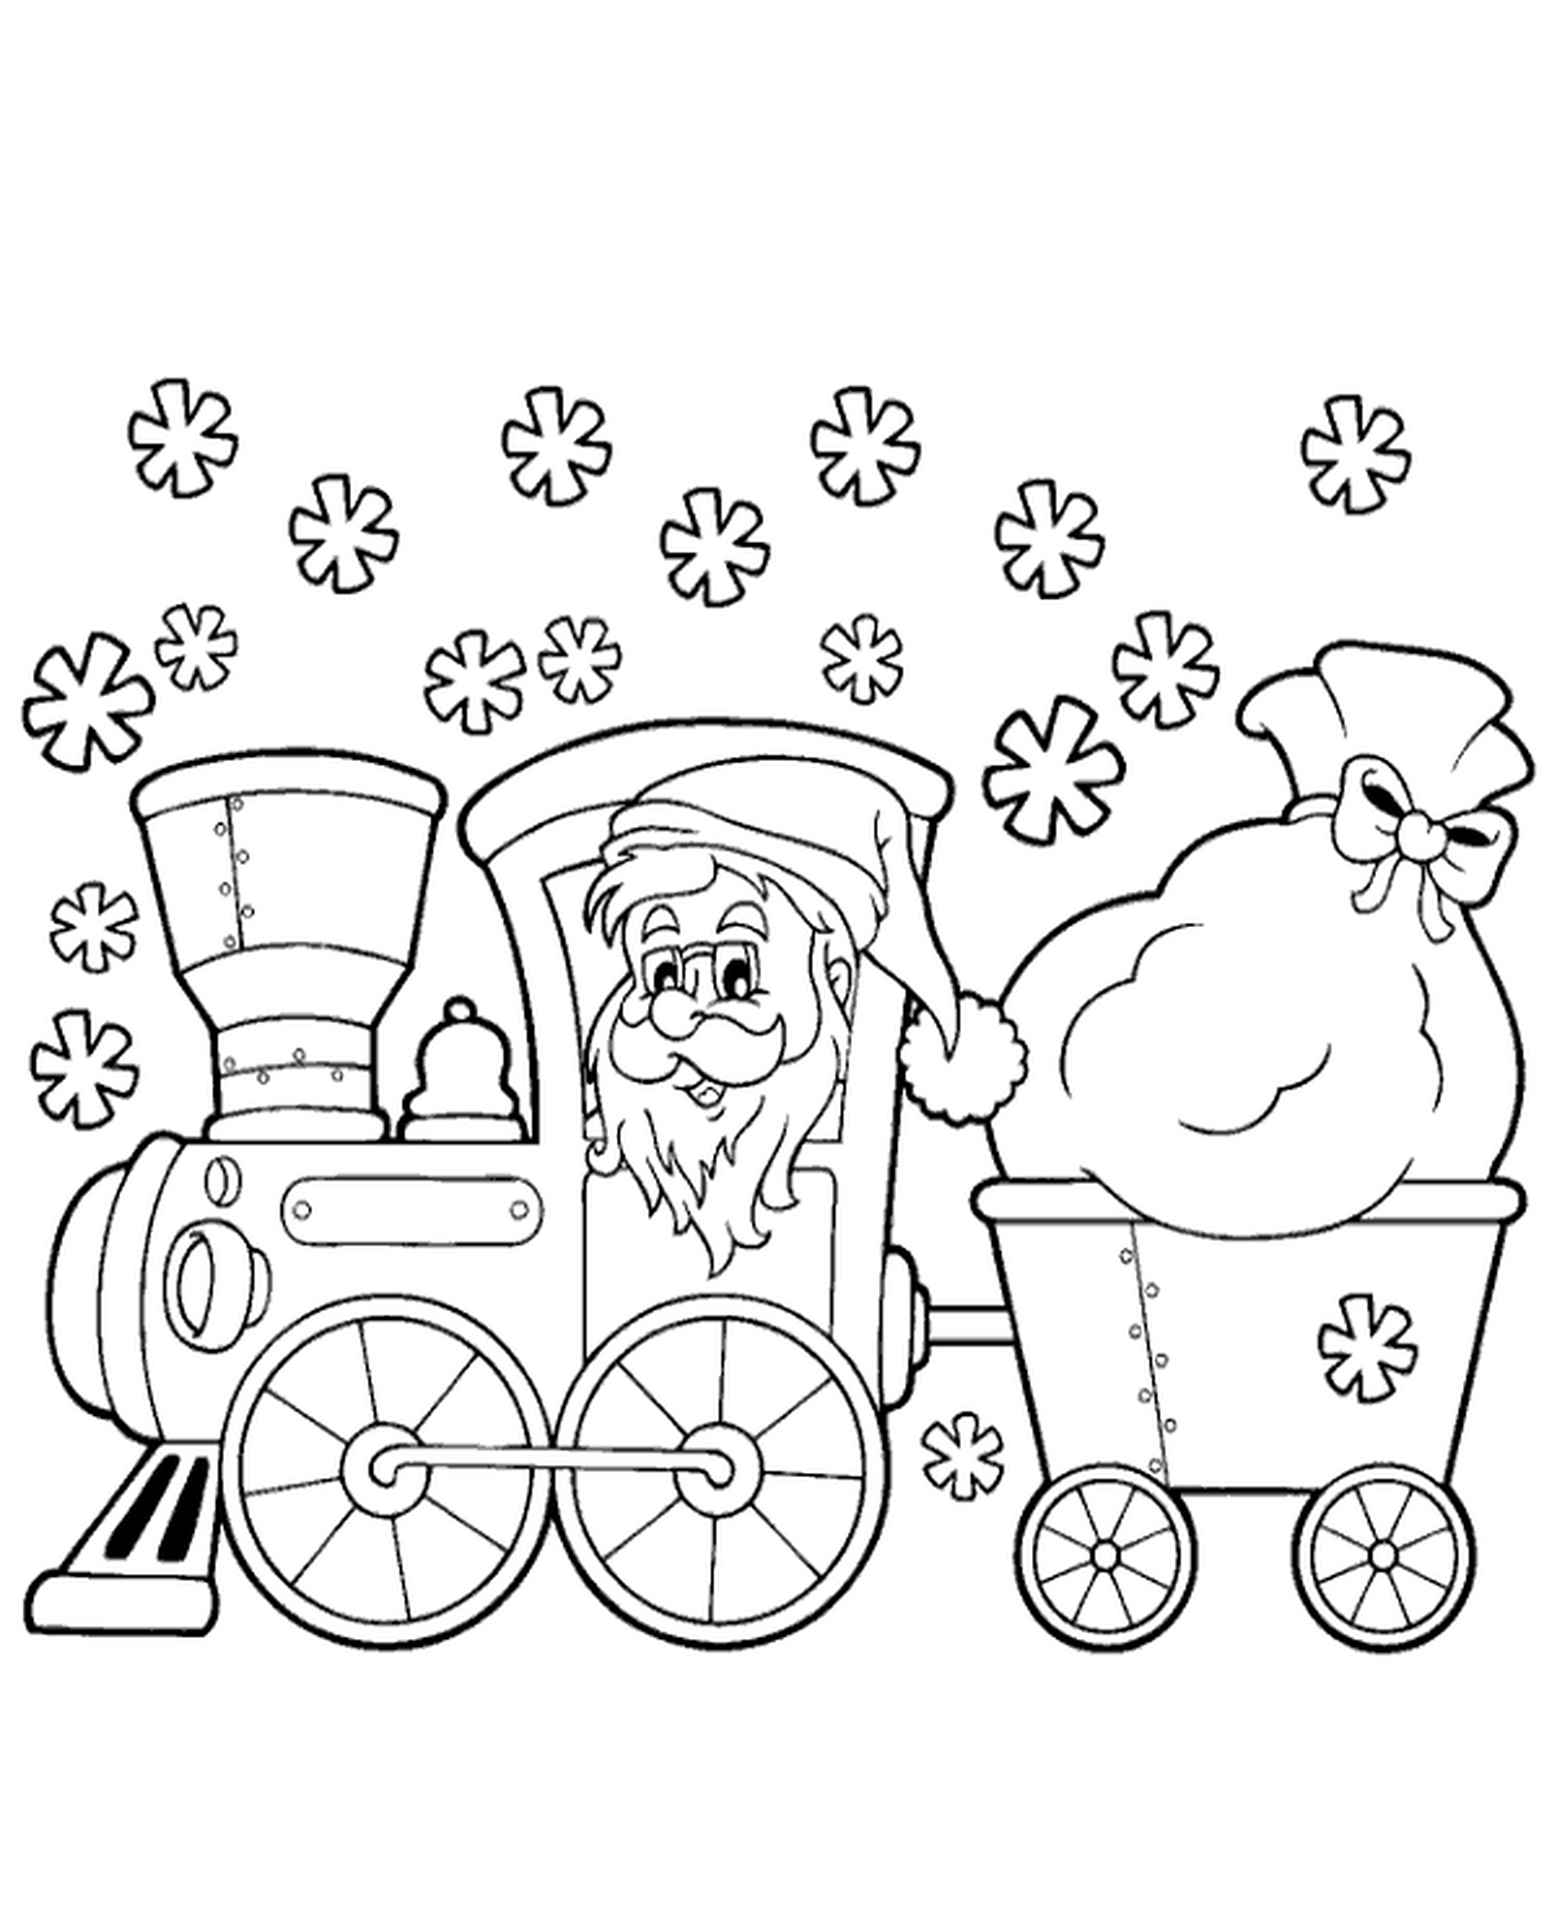 Santa With Presents Coloring Page For Winter